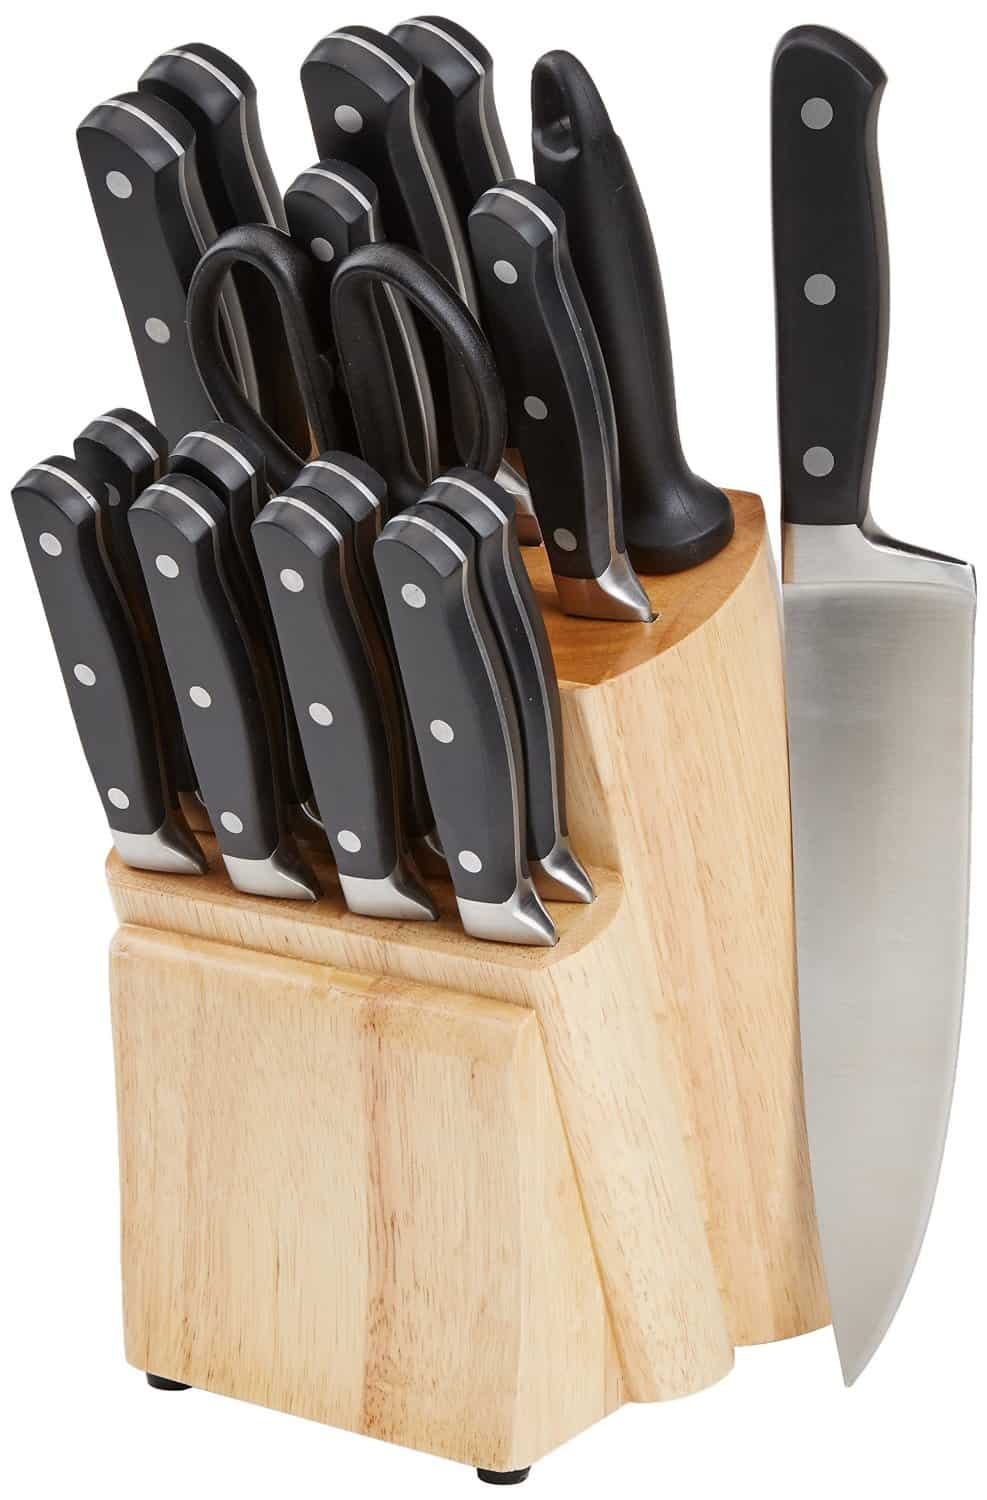 Amazonbasics Premium 18 Piece Knife Block Set Review